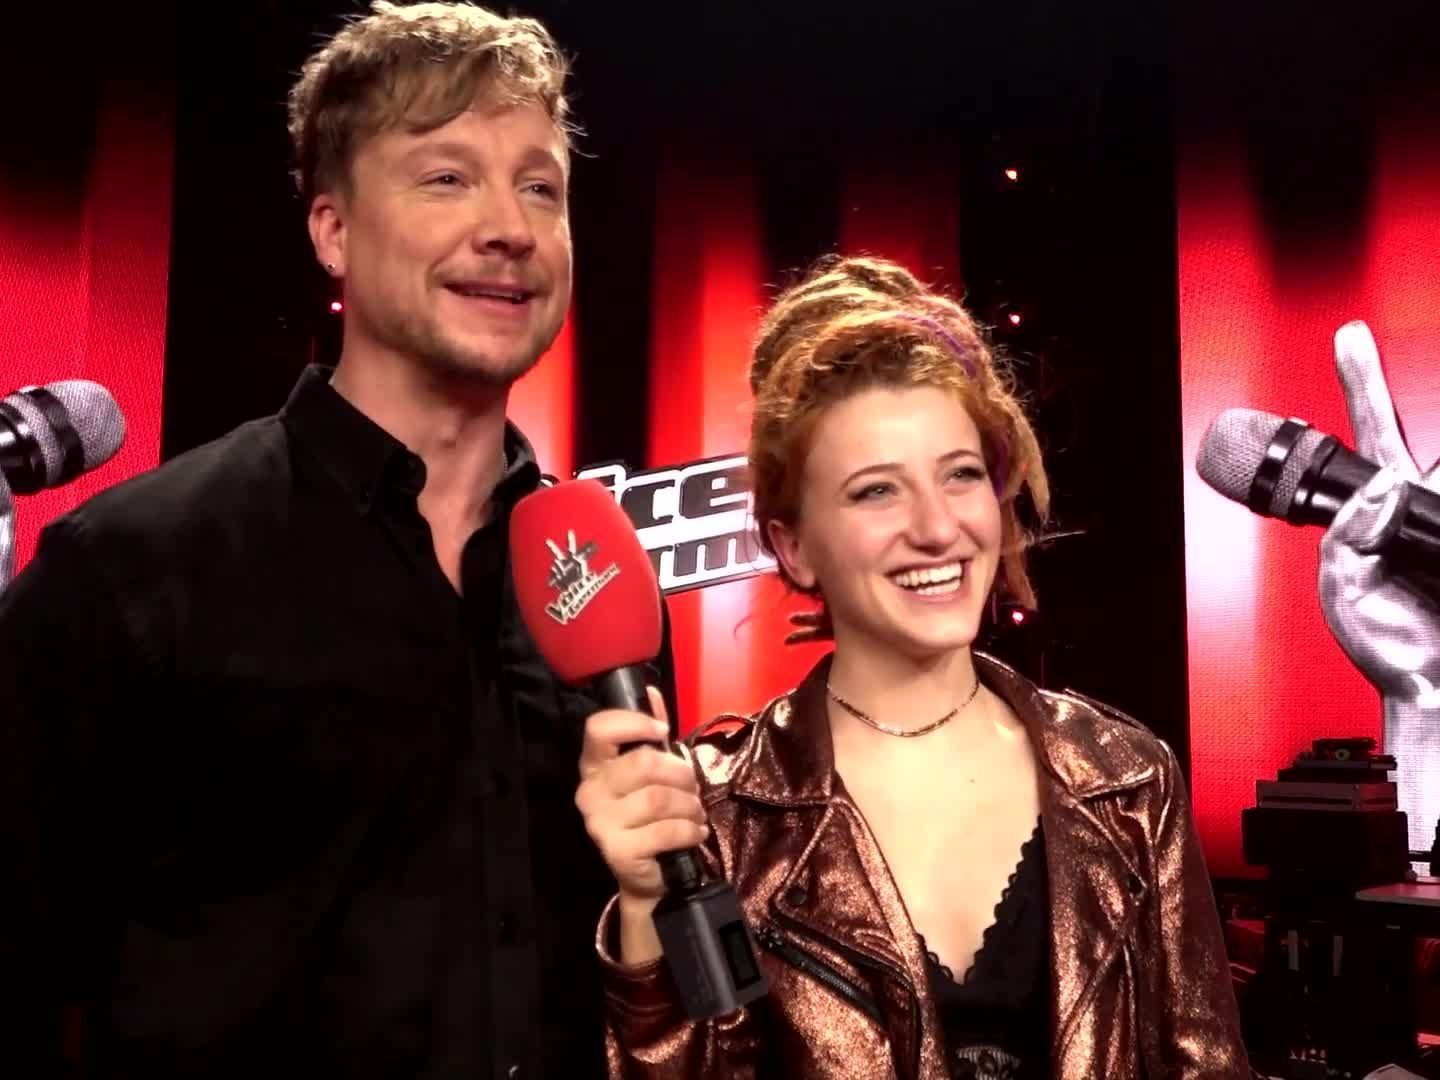 Samu Haber mit Natia, Gewinnerin von The Voice of Germany 2017.